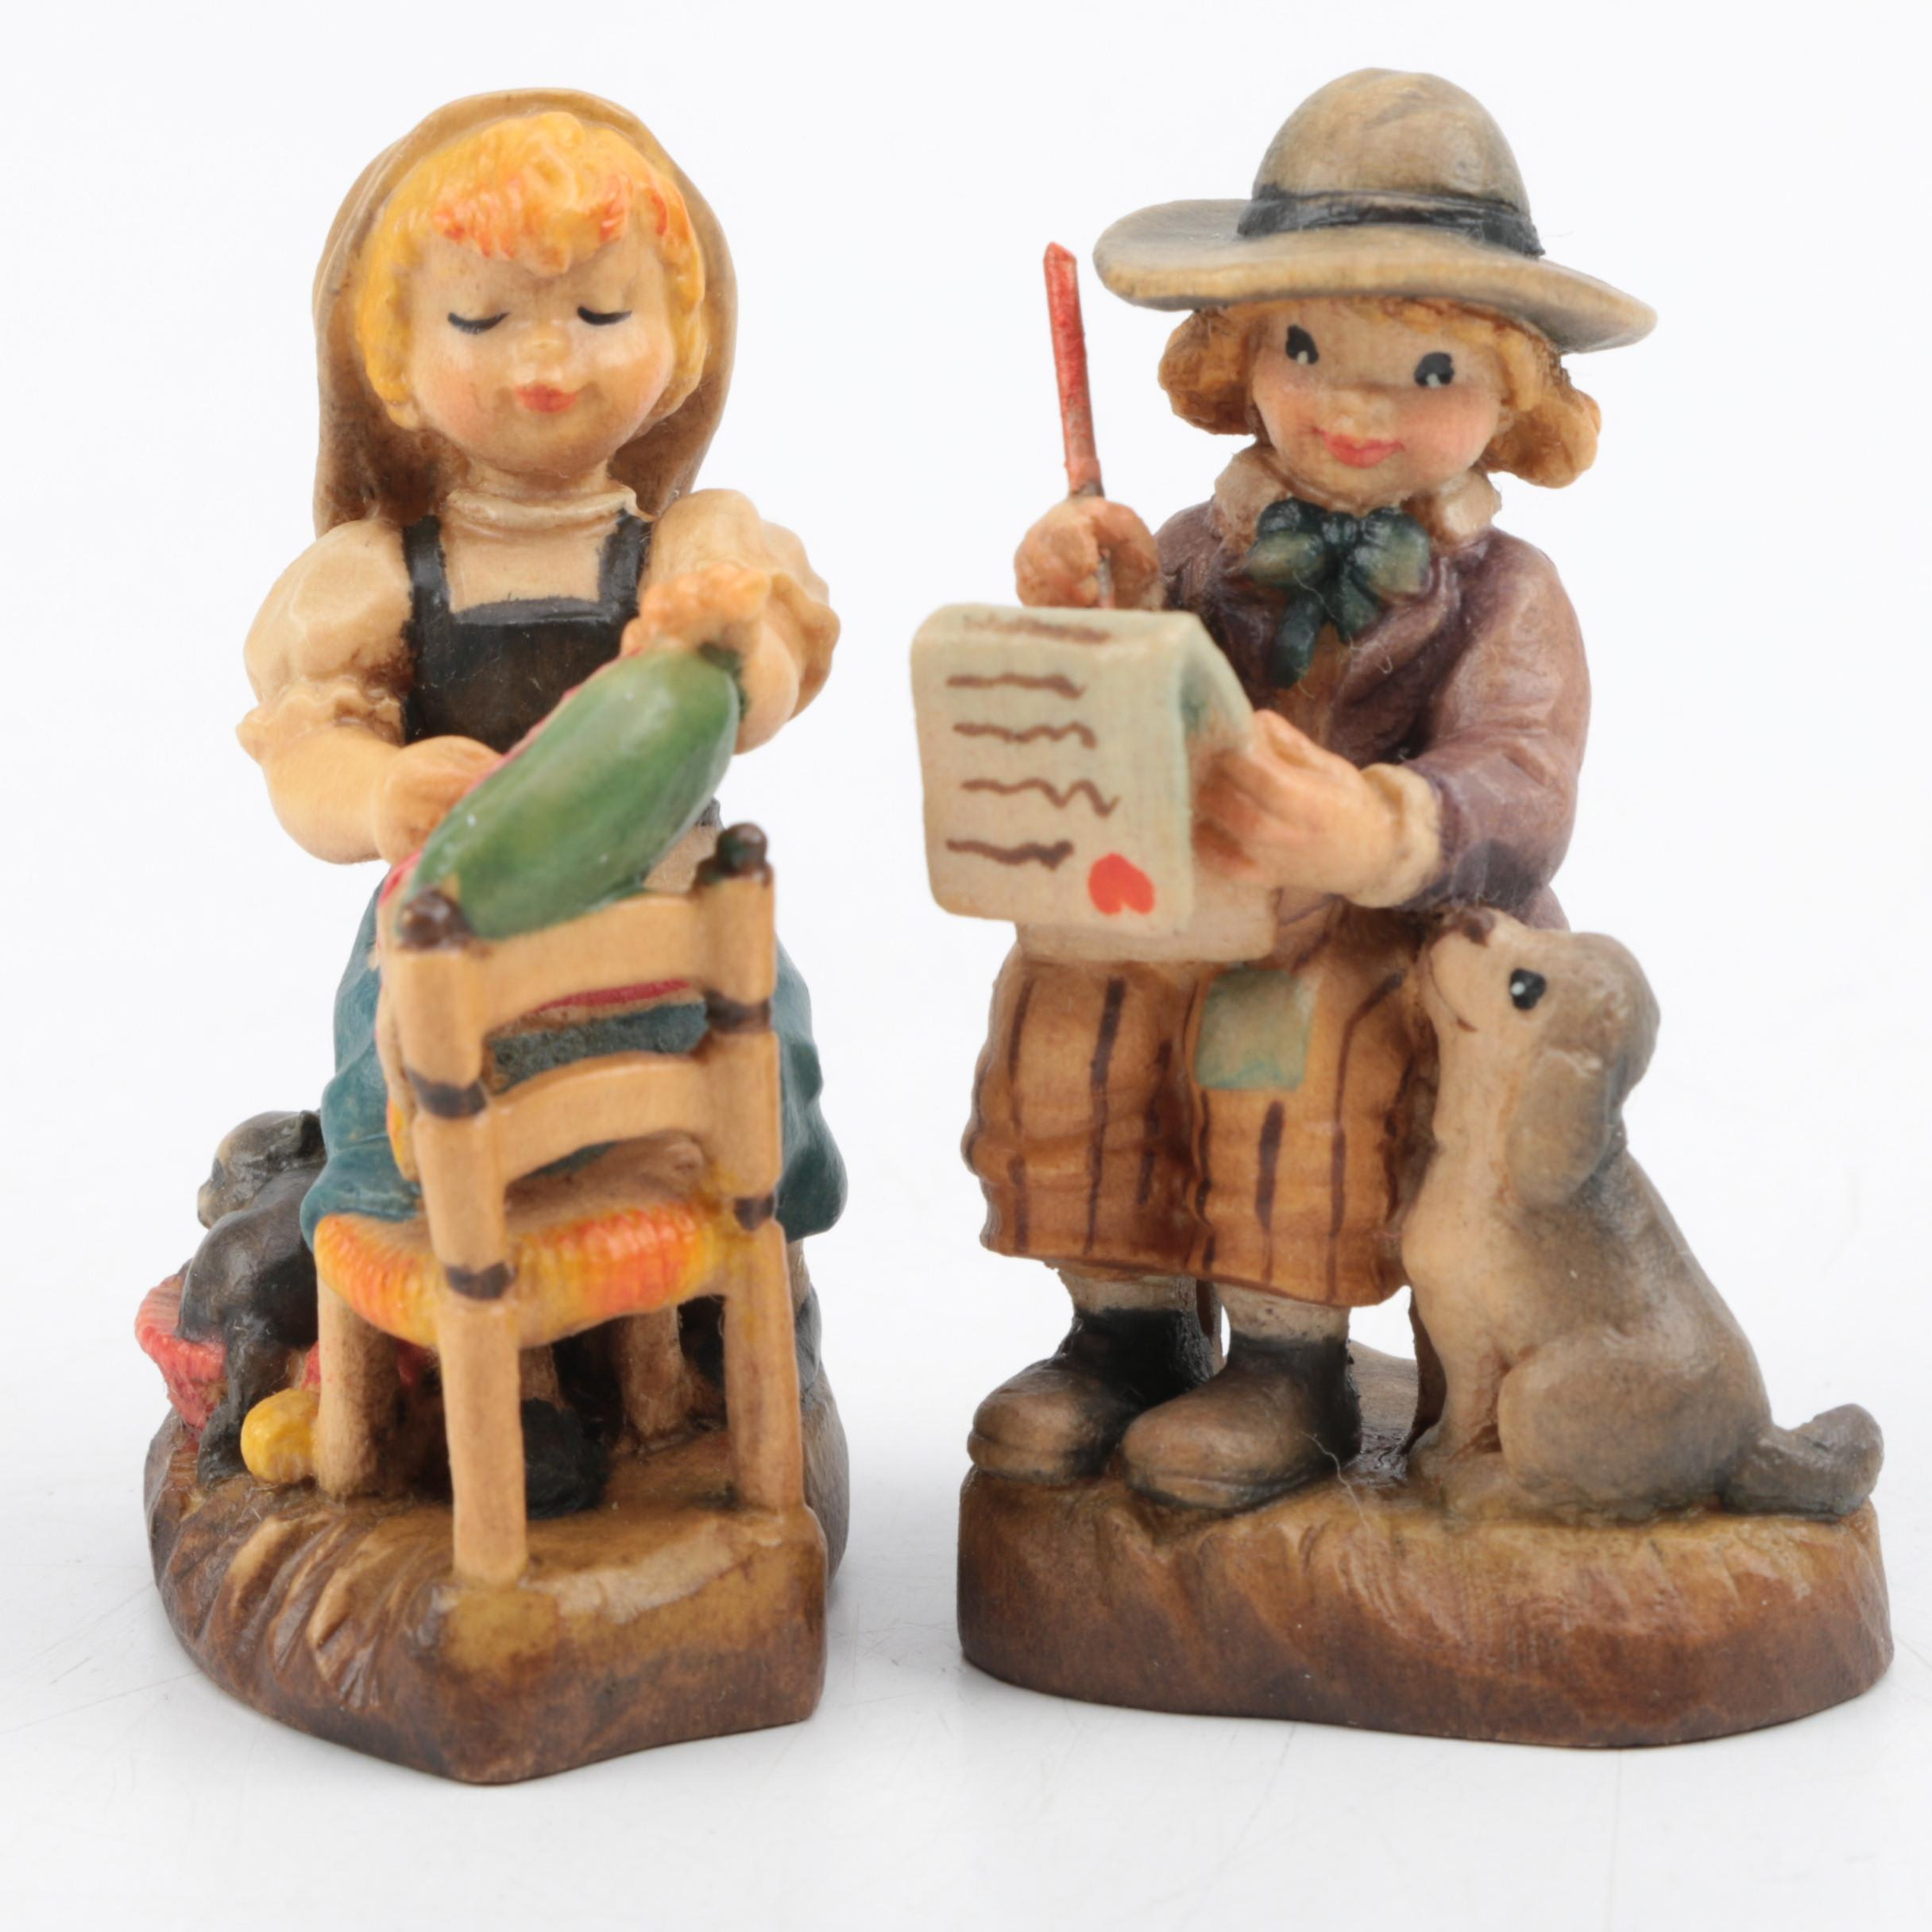 ANRI Carved Wooden Figurines